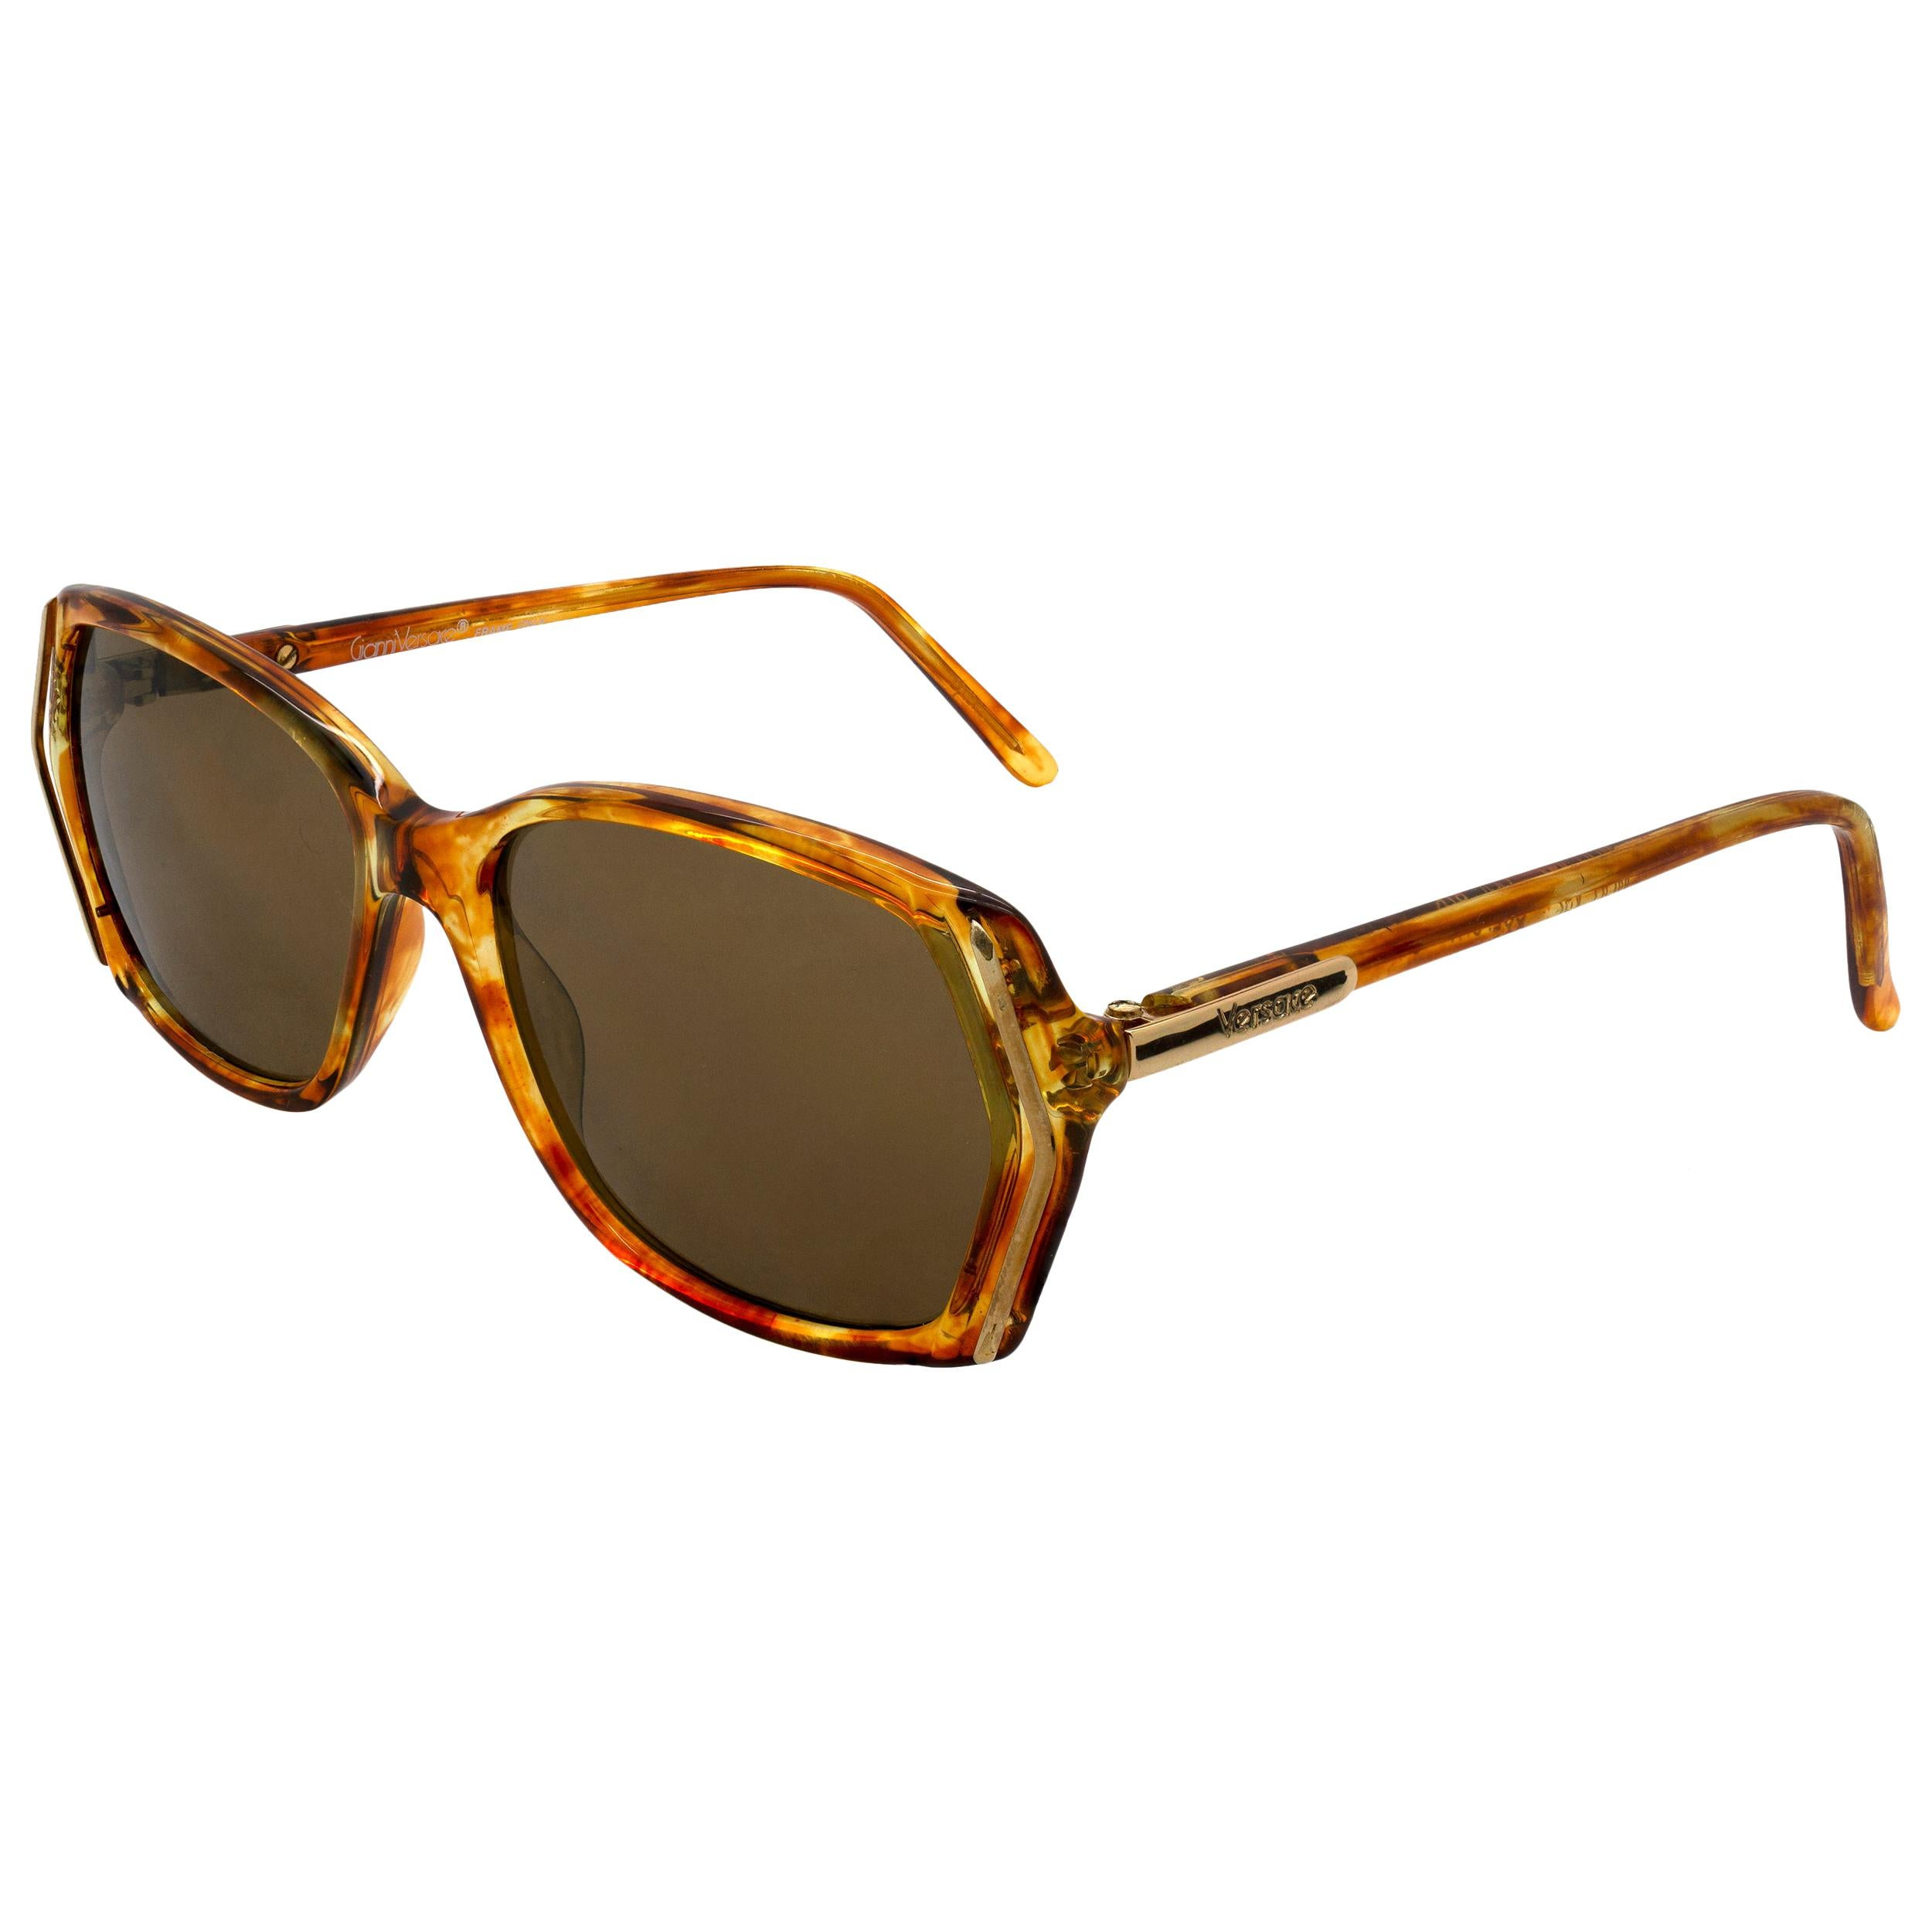 Gianni Versace vintage sunglasses for women